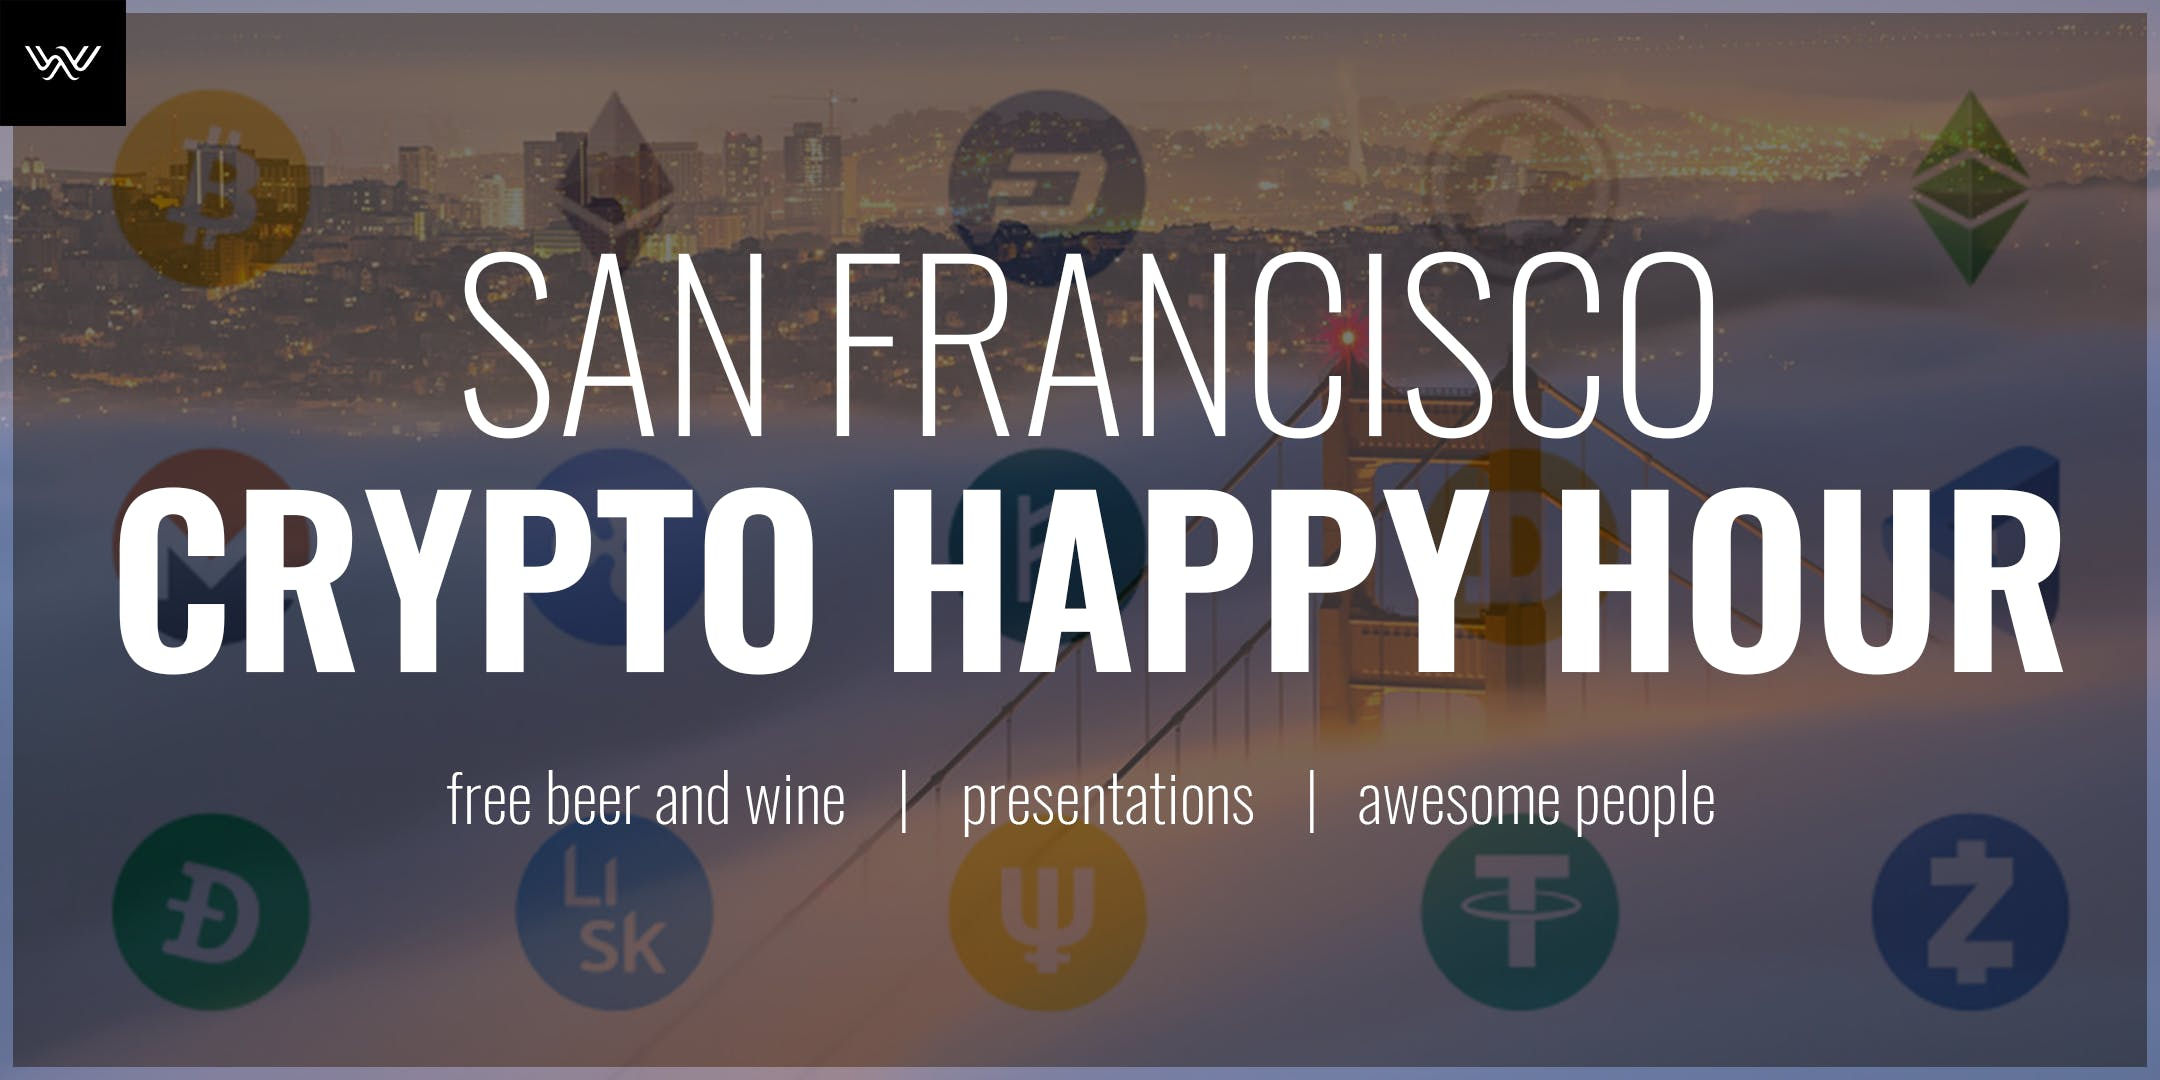 San Francisco Crypto Happy Hour With Presenta